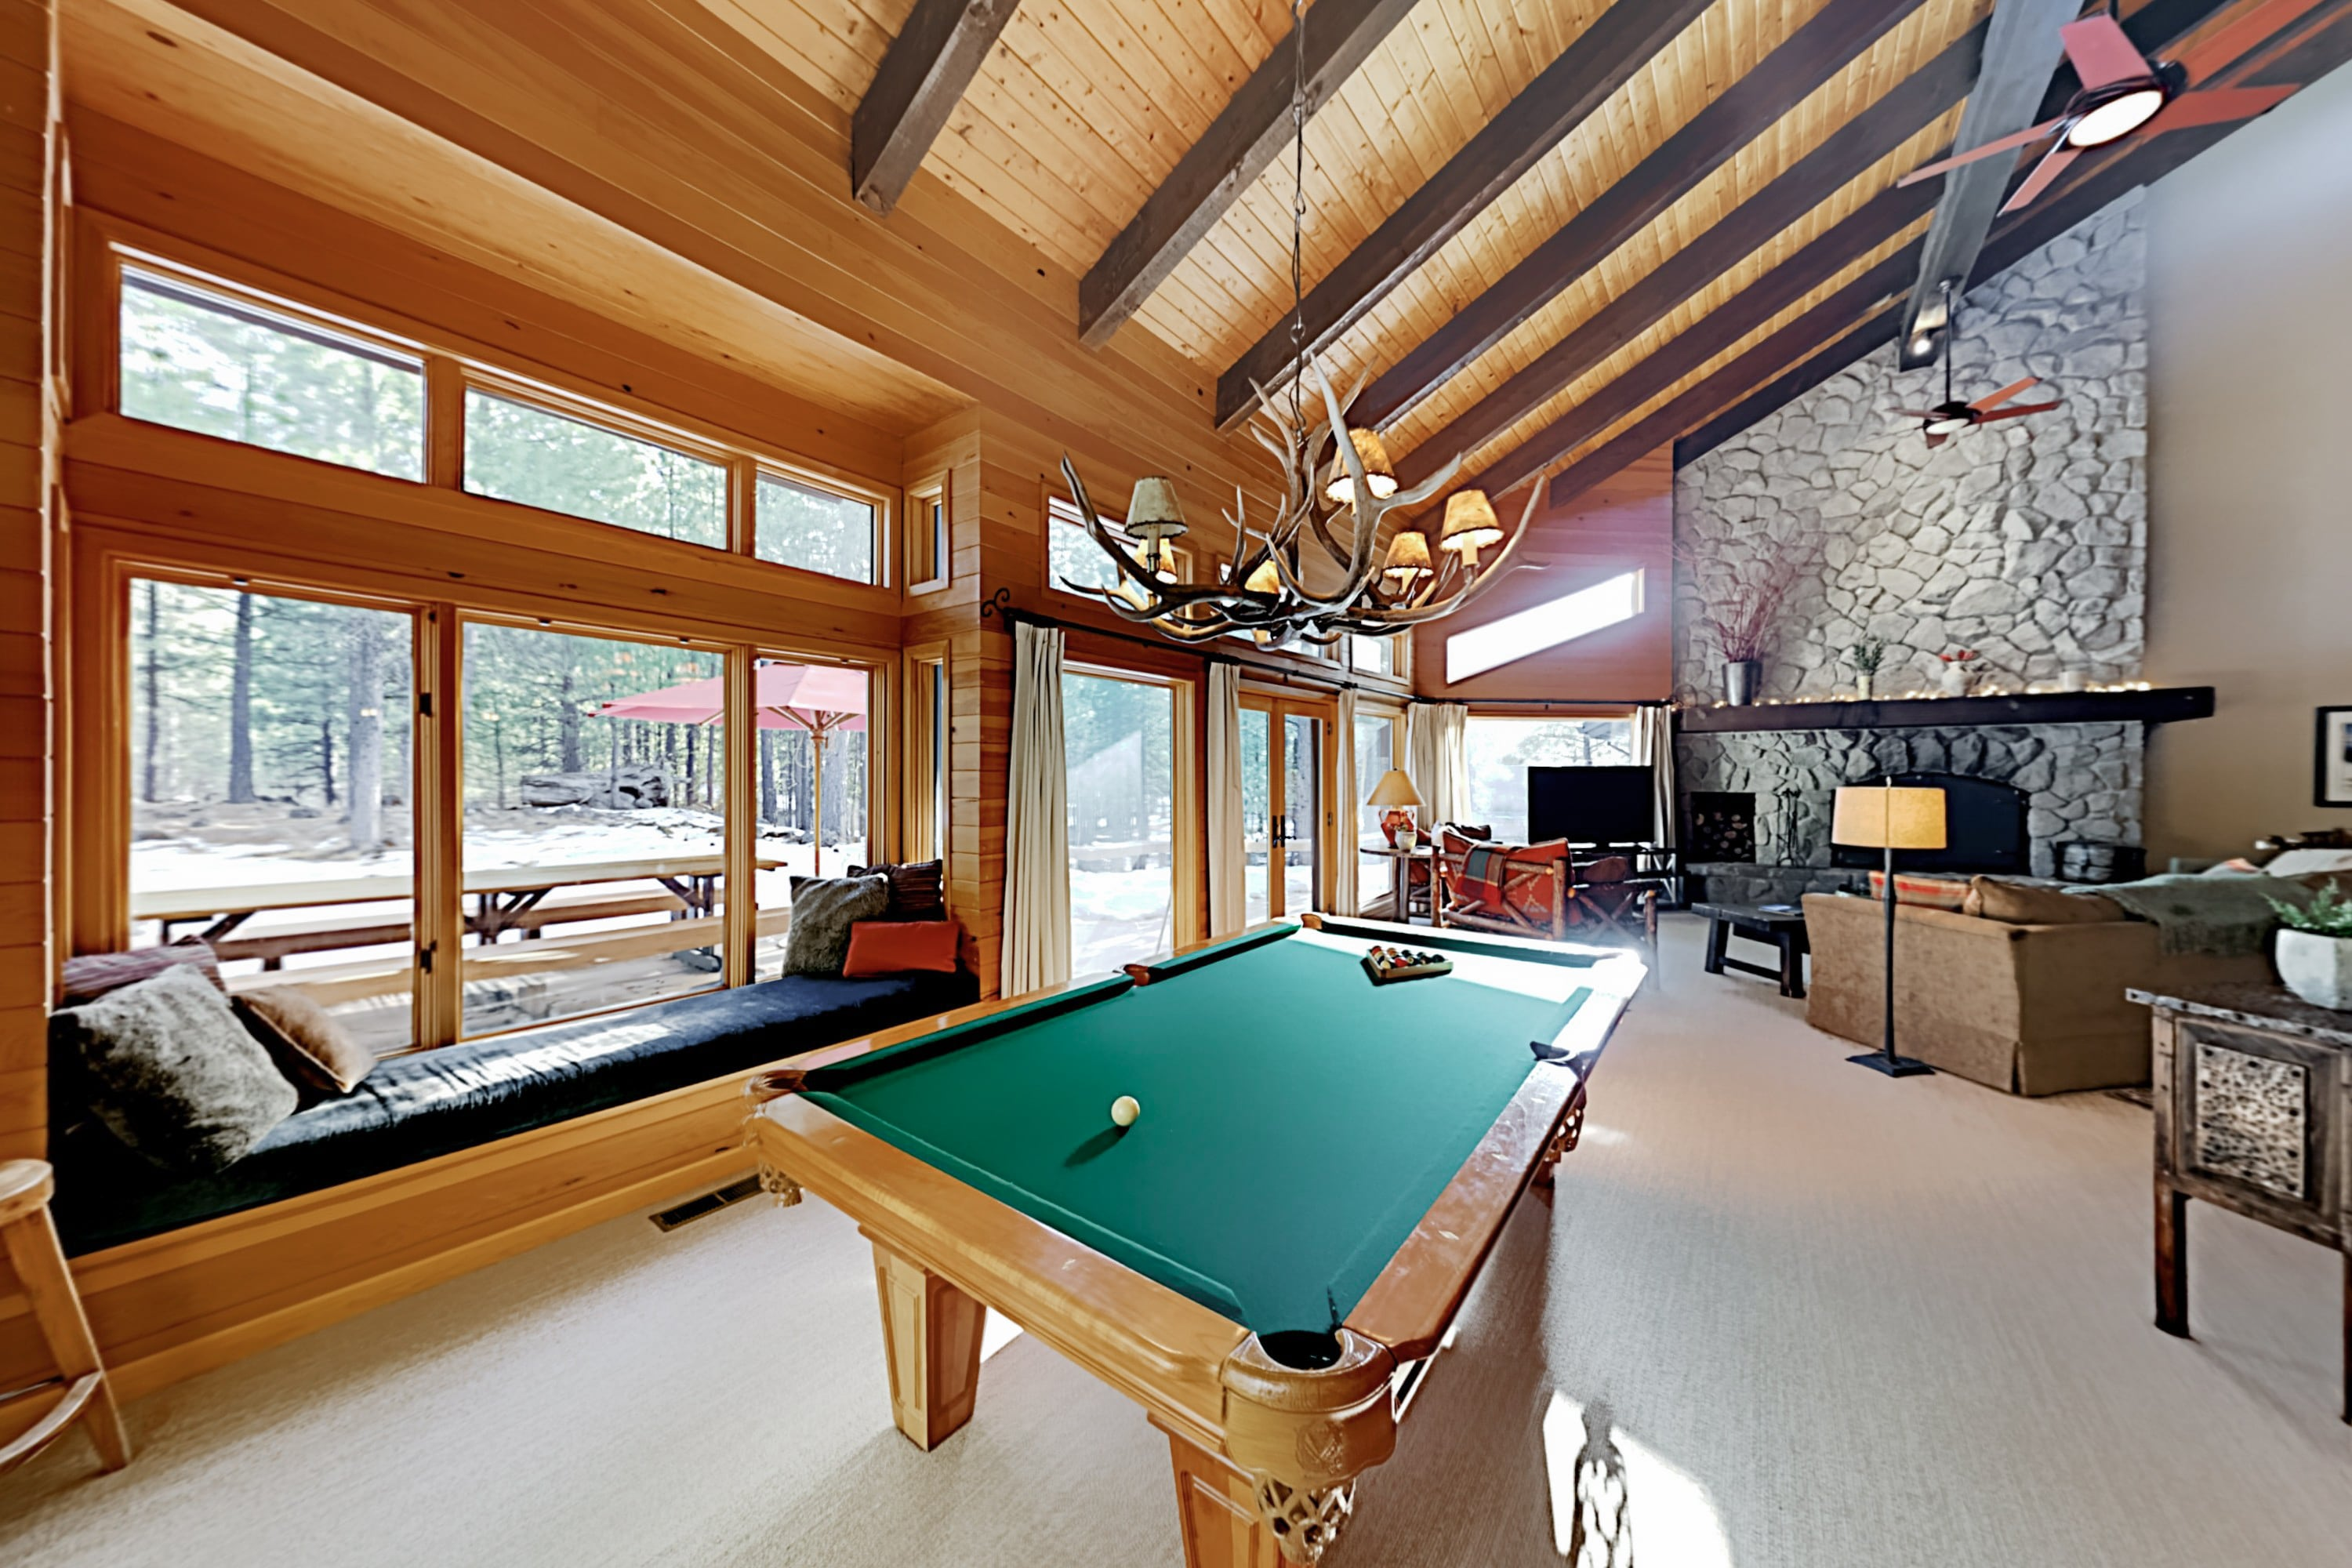 Property Image 2 - Alpine Stunner | Pool Table & Private Hot Tub